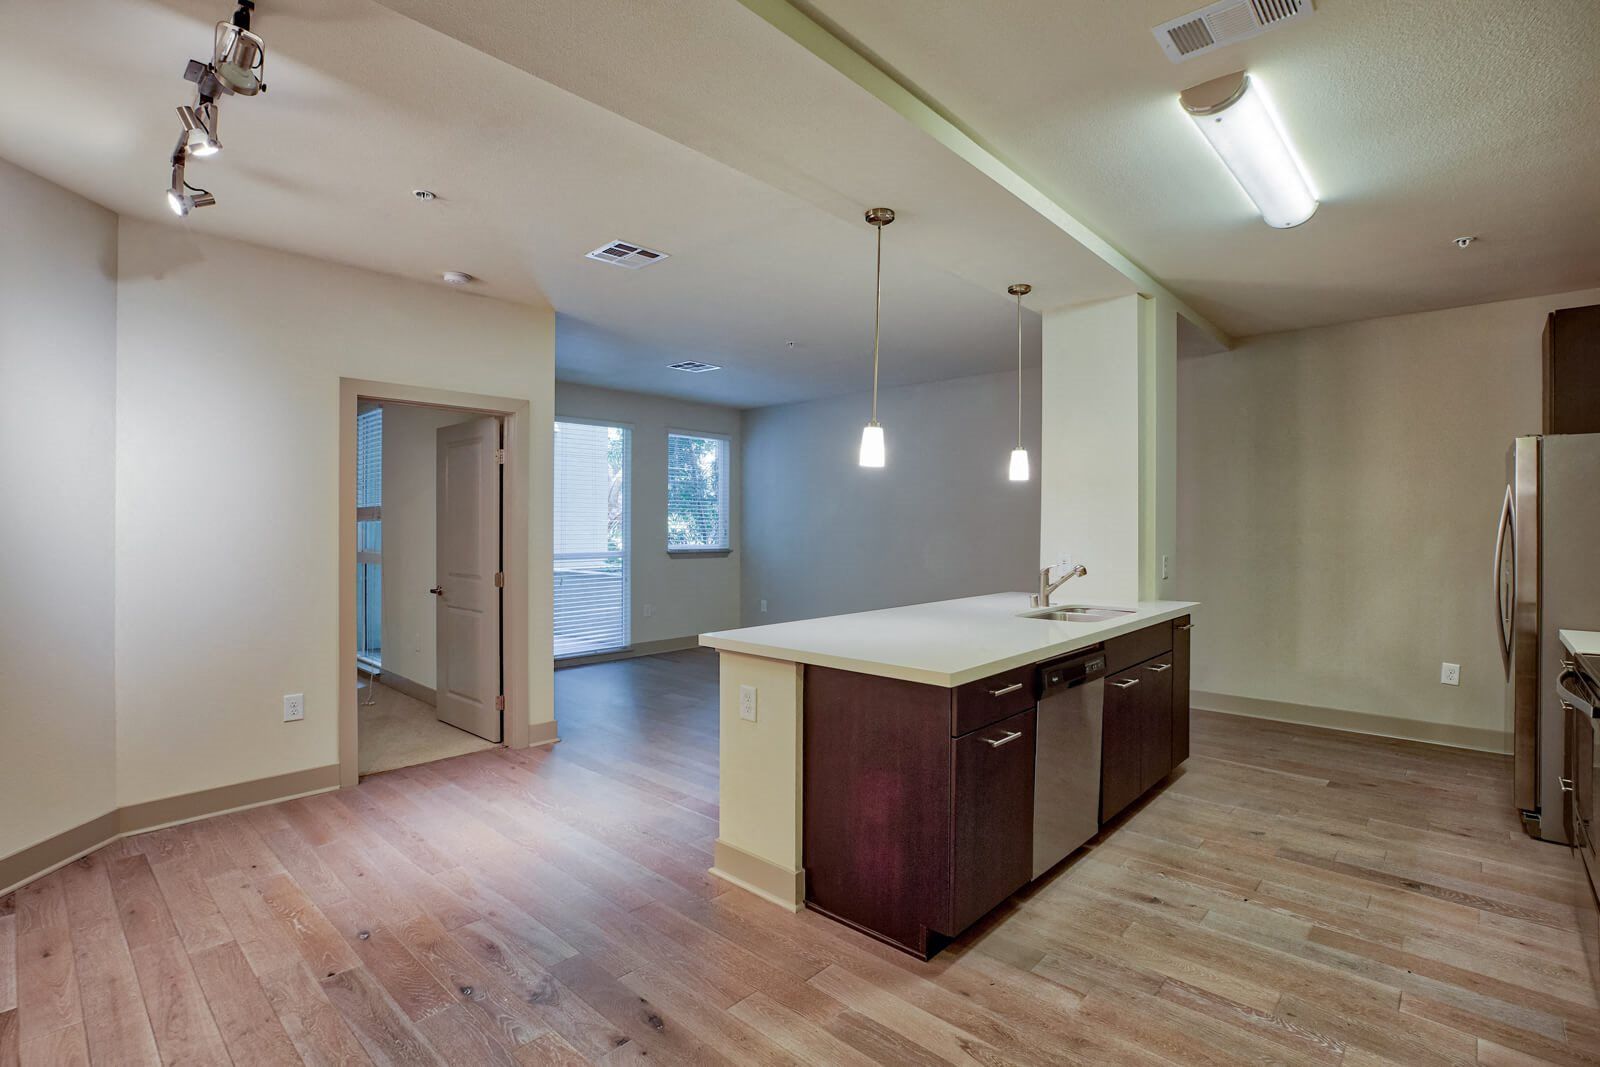 Wood-Style Flooring in Entry, Kitchen, Living and Dining Areas at South Park by Windsor, 90015, CA